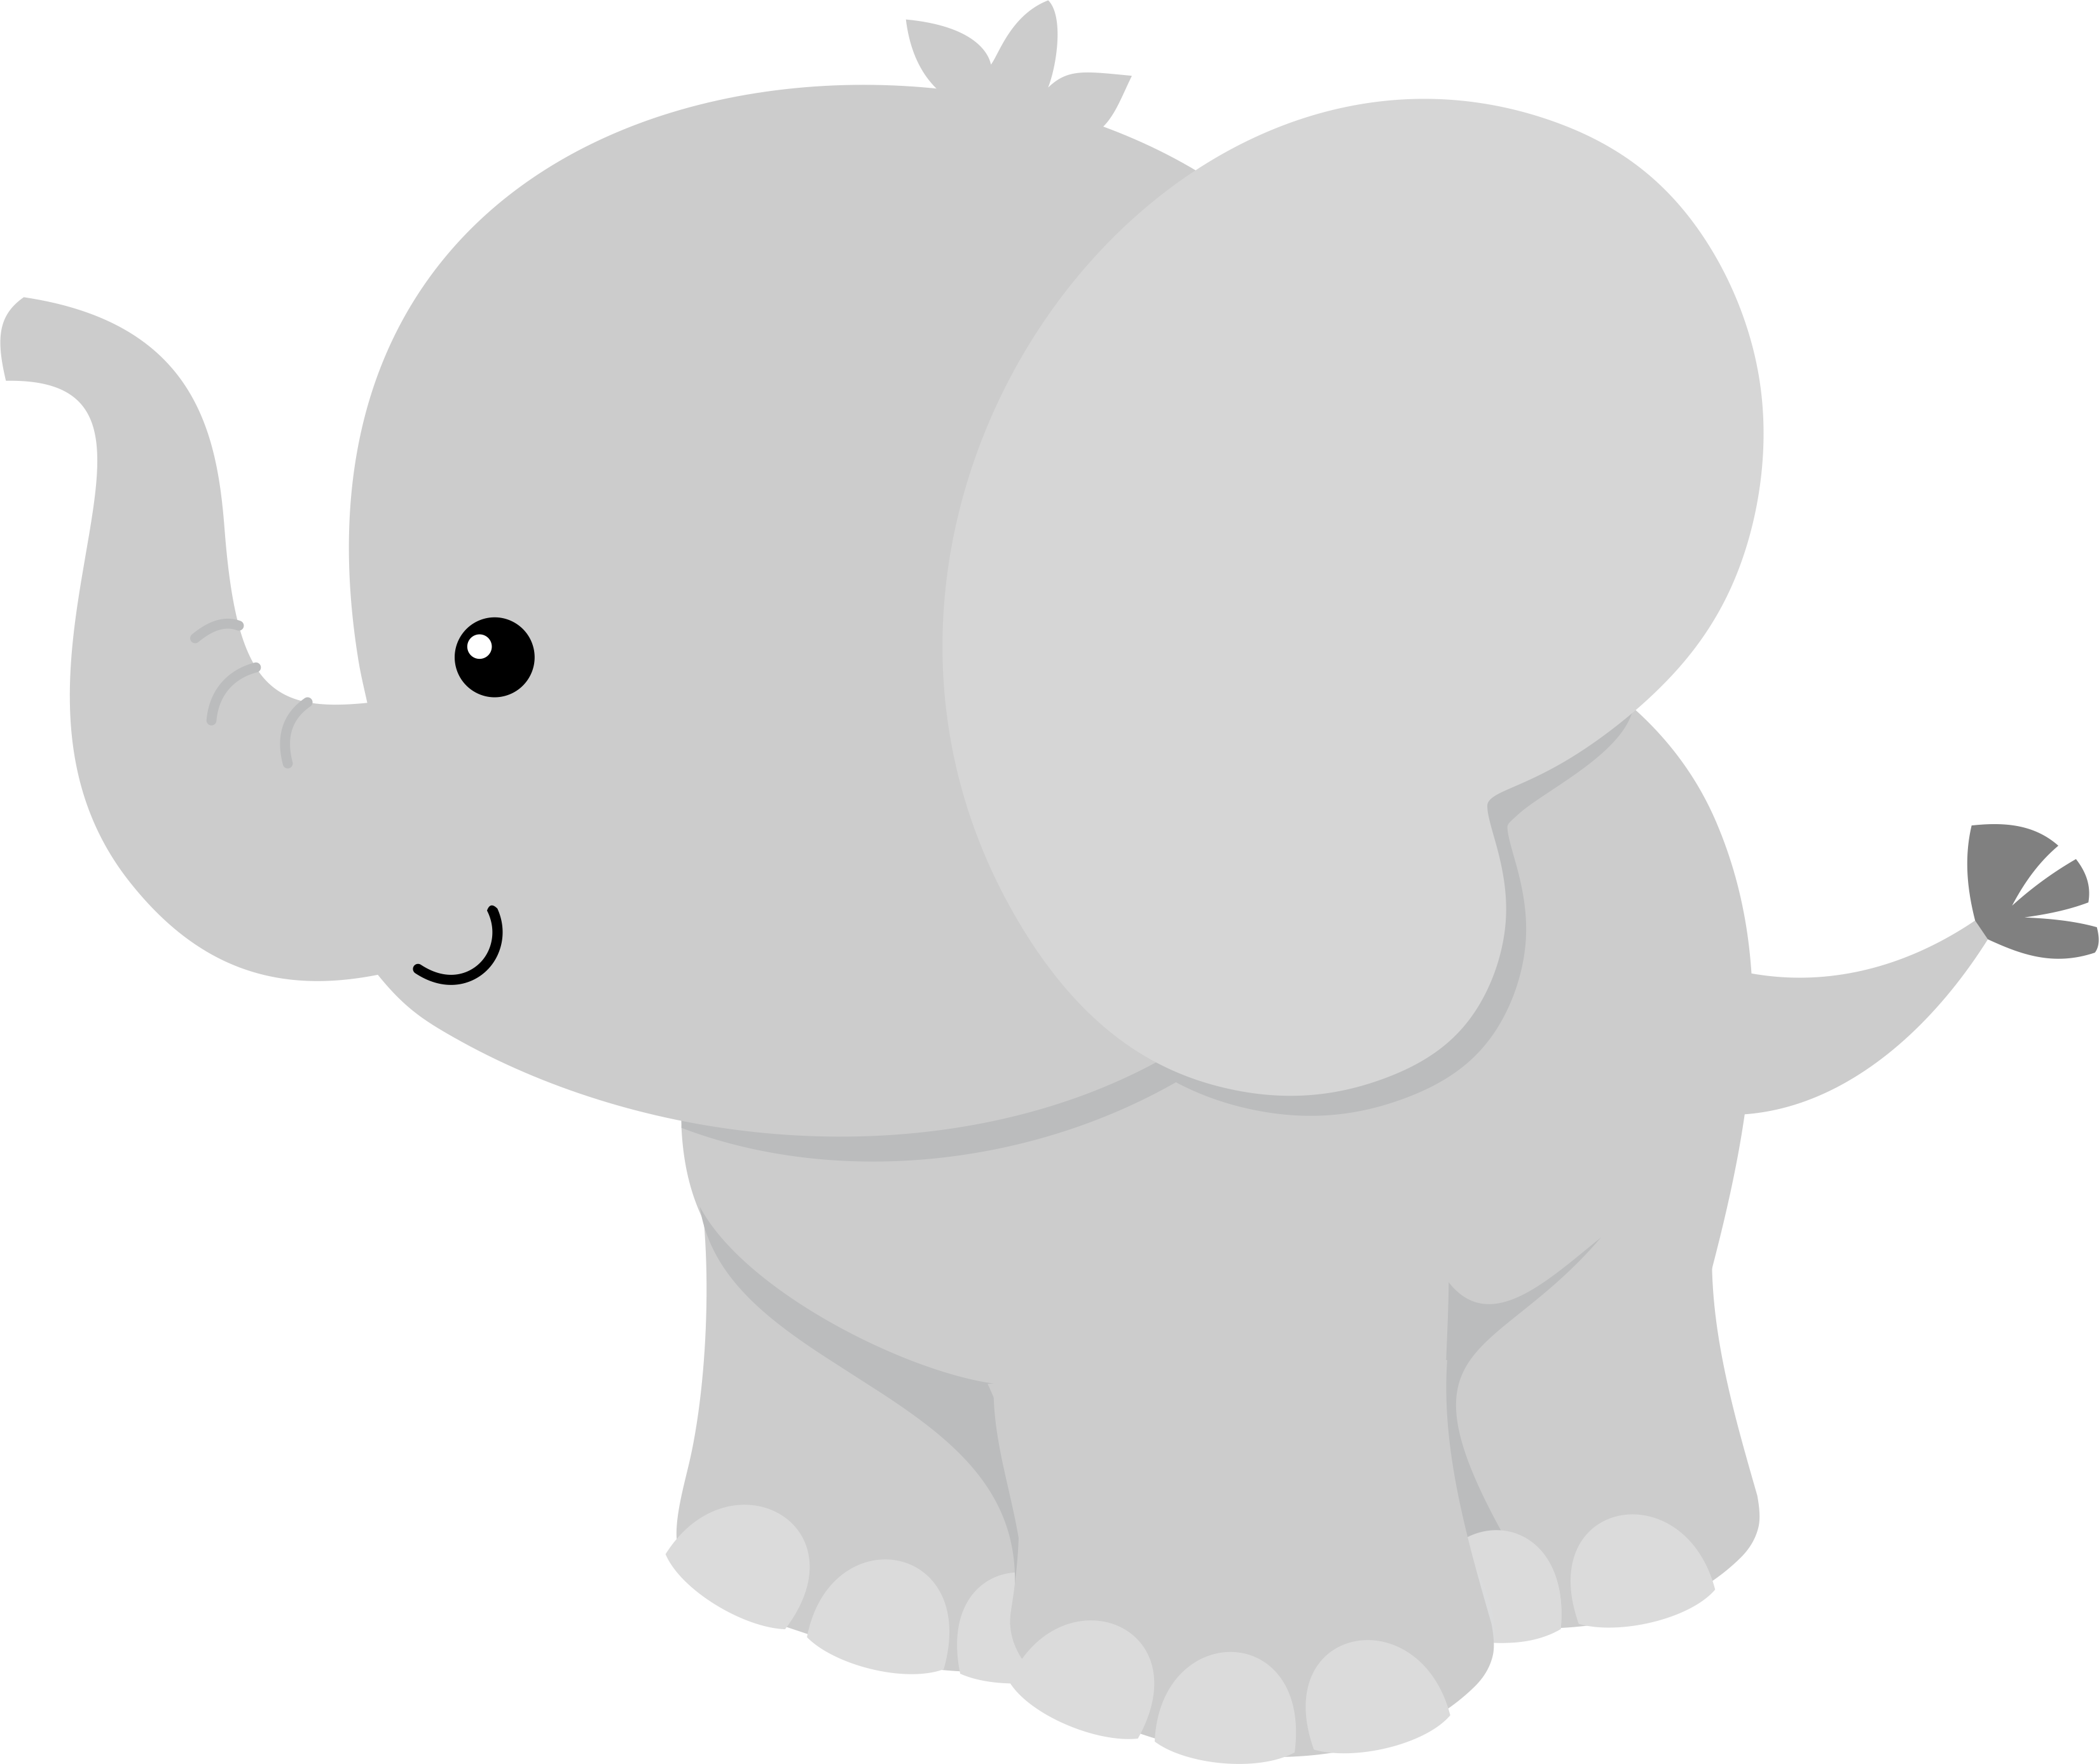 Baby elephant png. Gray transparent images birthdays